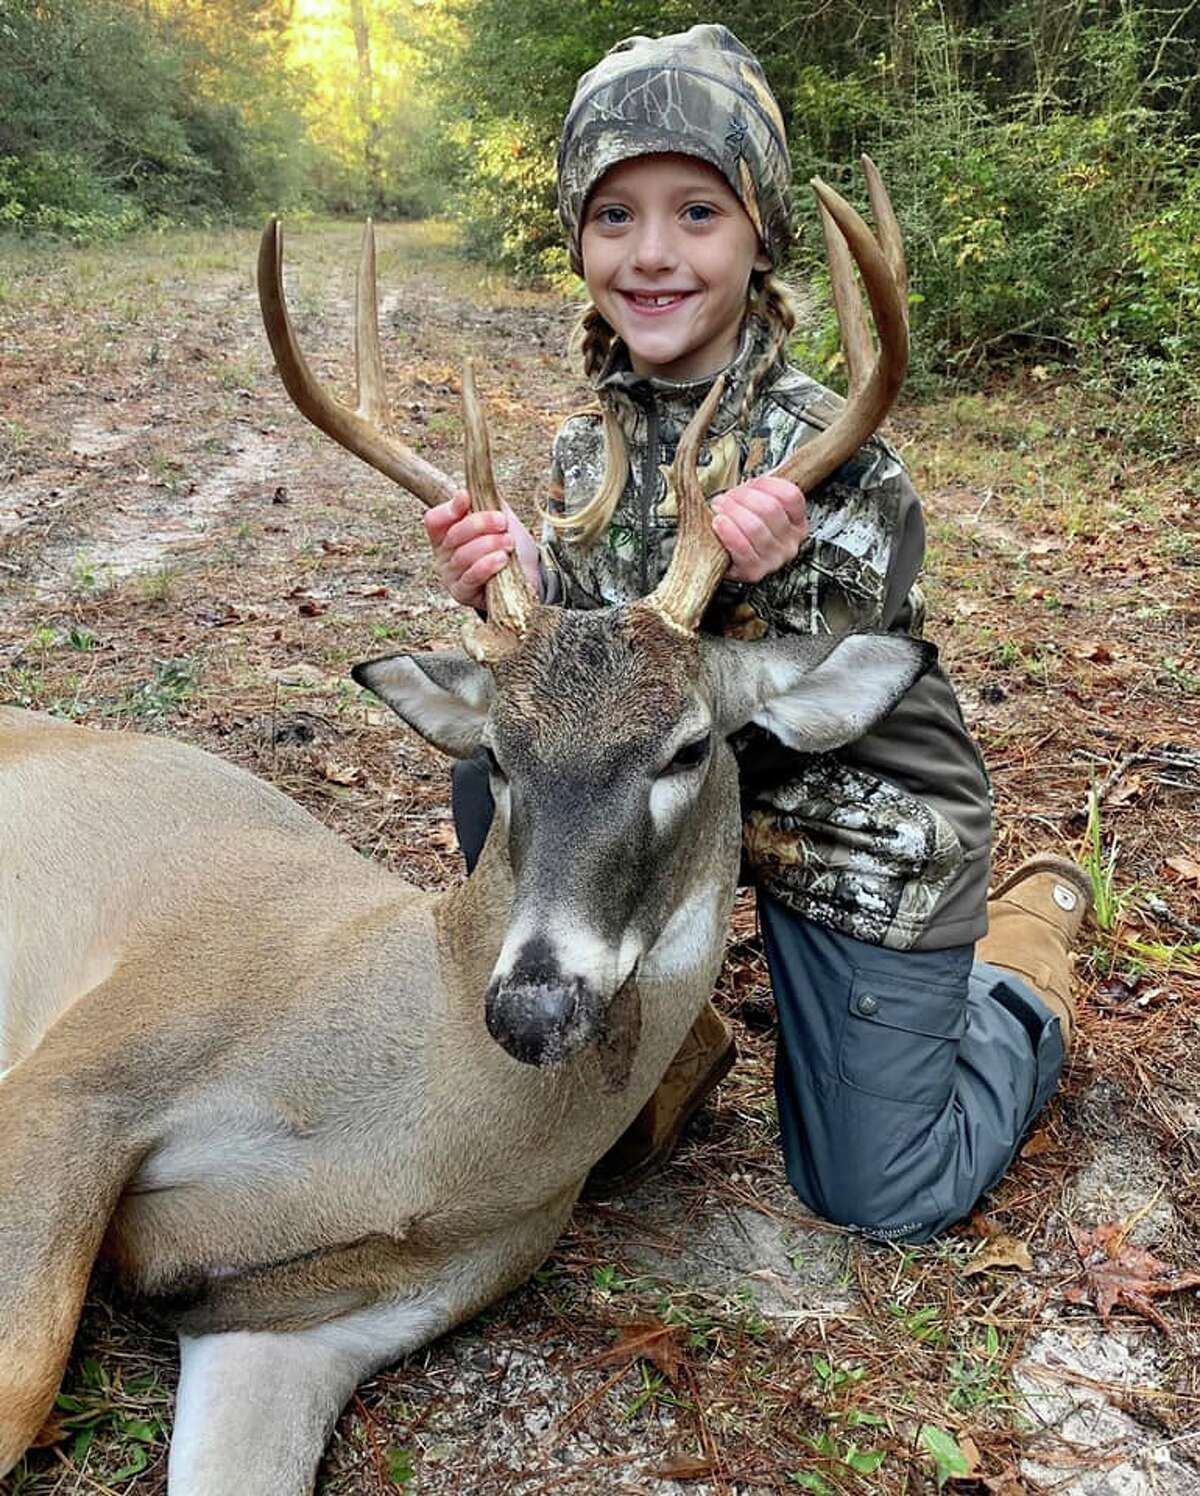 PHOTOS: Houston kids' prized killsYouth hunting season is officially under way in Texas after the Texas Parks and Wildlife Department's Youth Only open seasons for duck, turkey and white-tailed deer kicked off last weekend. >>>See the latest photos of Houston-area kids showing off their prized kills... Courtesy Clint Lyndsay Richardson/Facebook